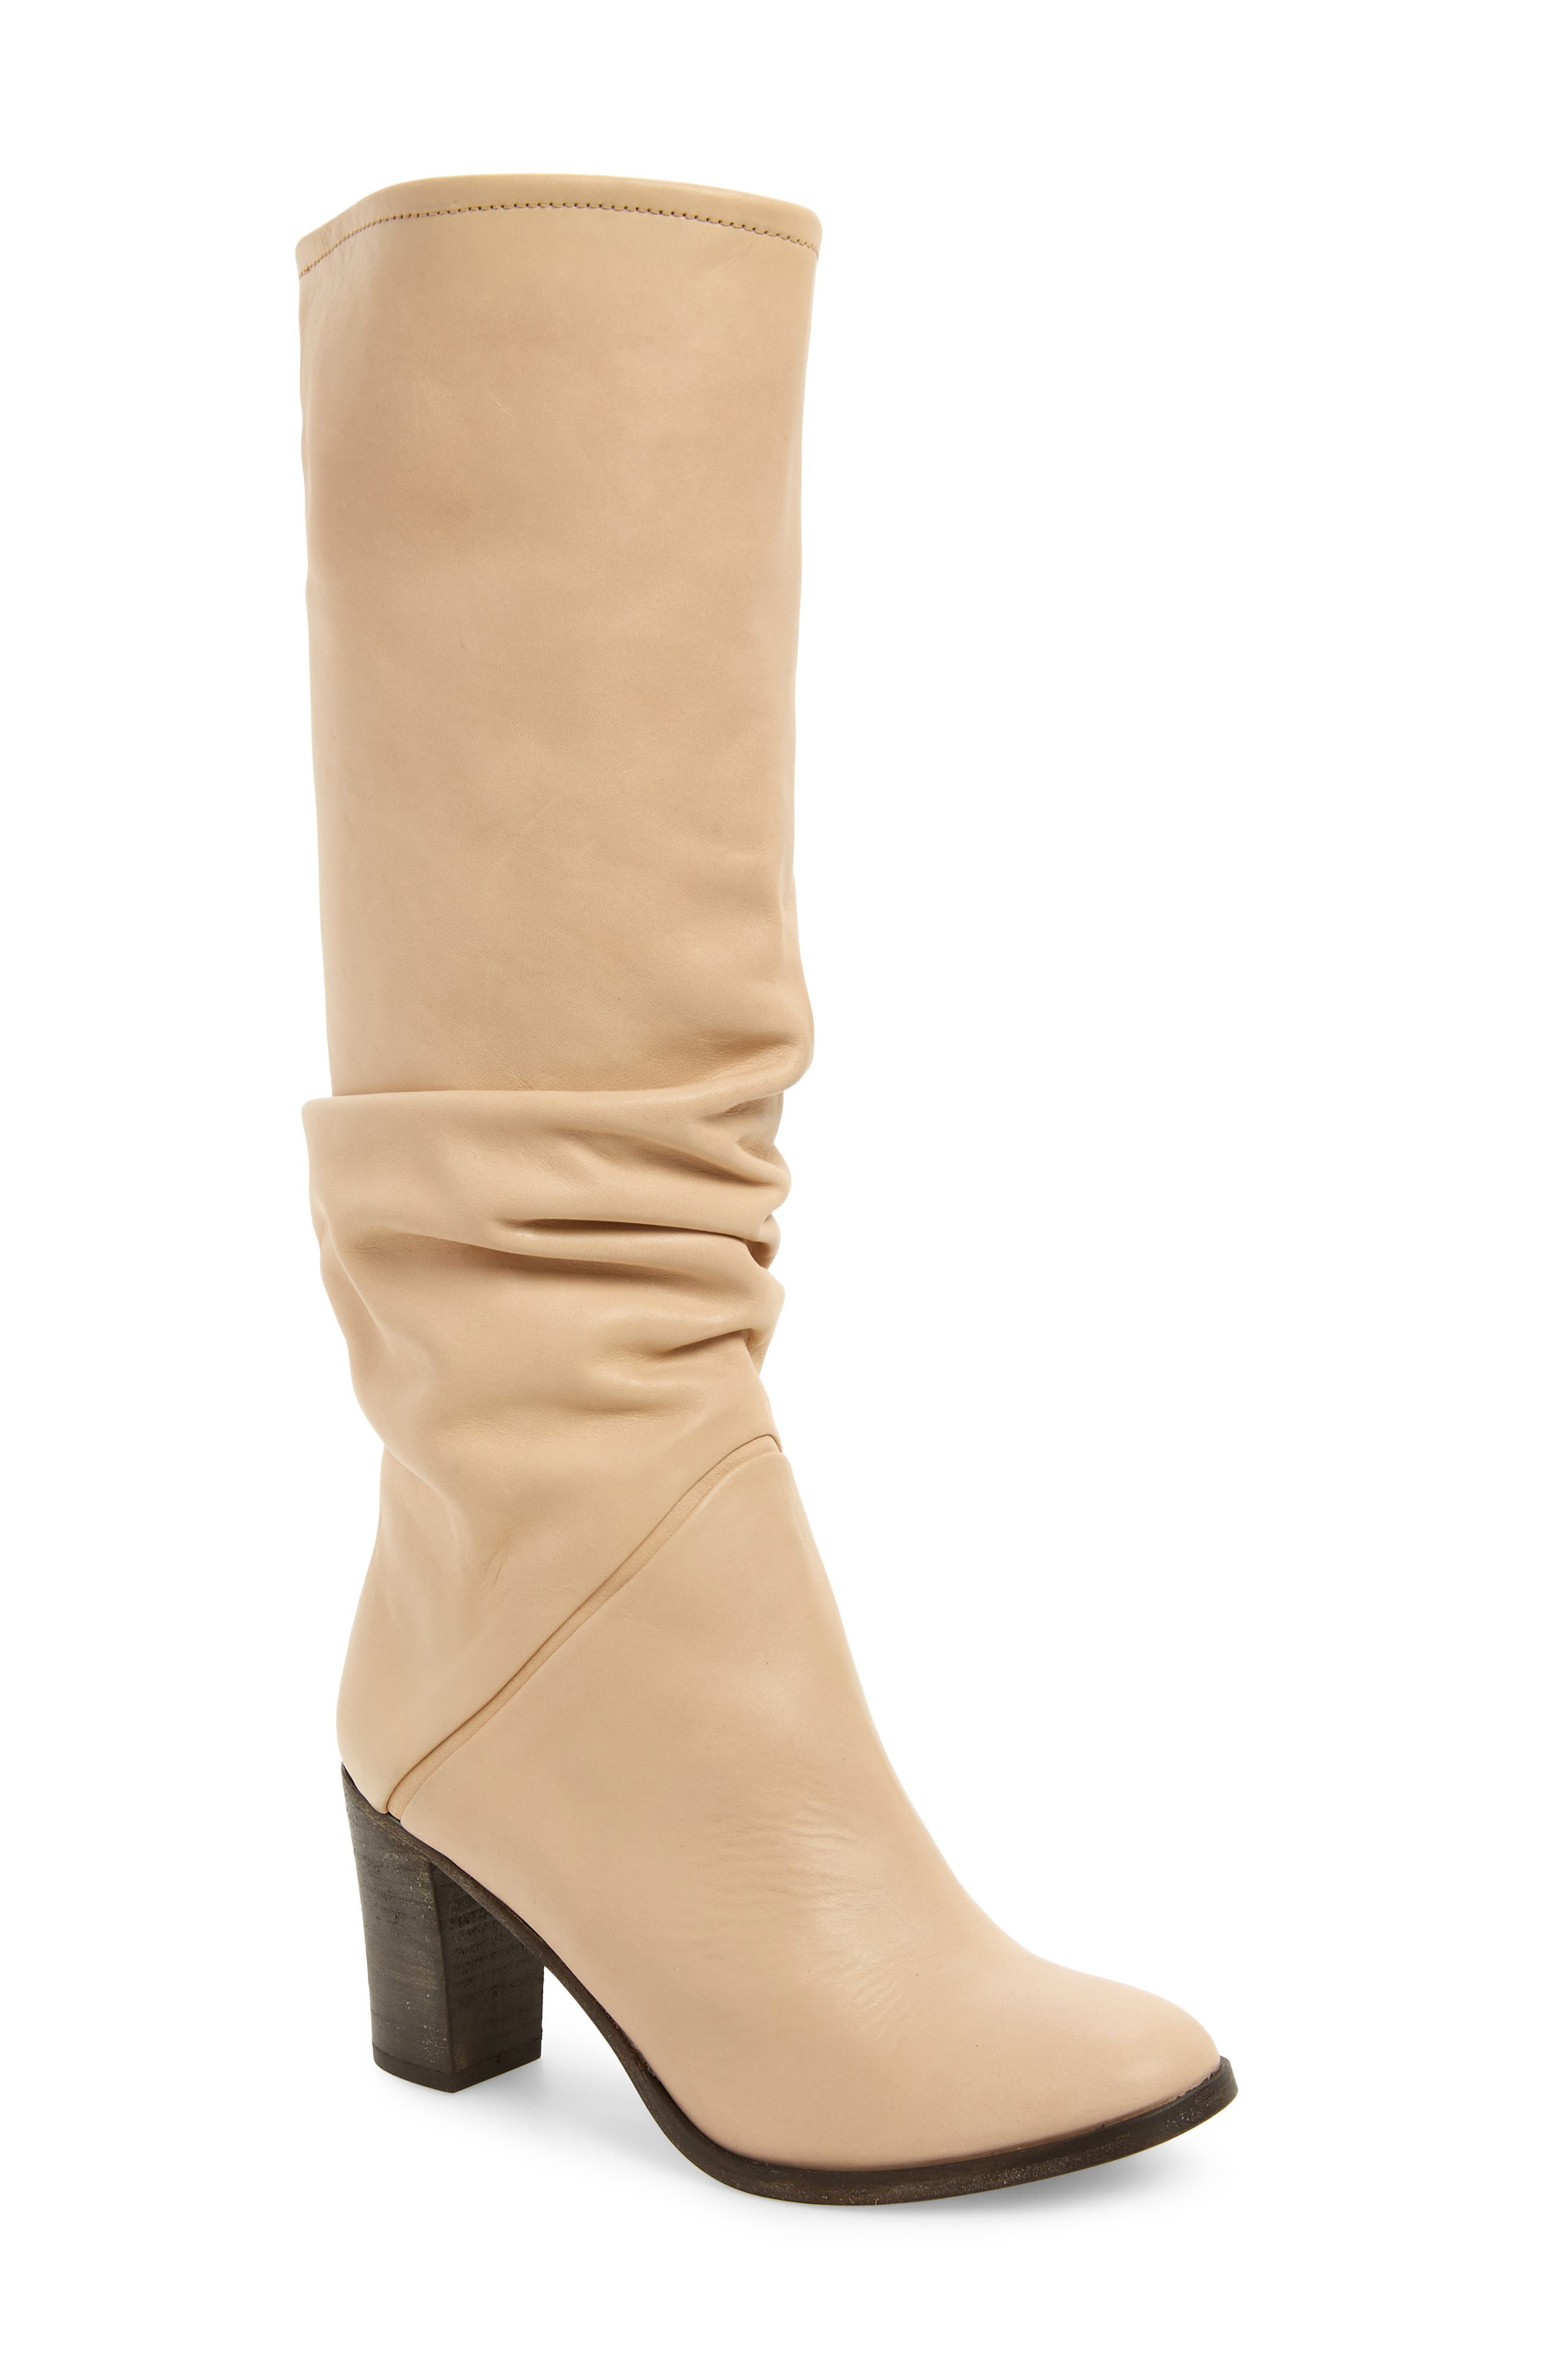 Tennison Knee High Boot,                         Main,                         color, BEIGE LEATHER